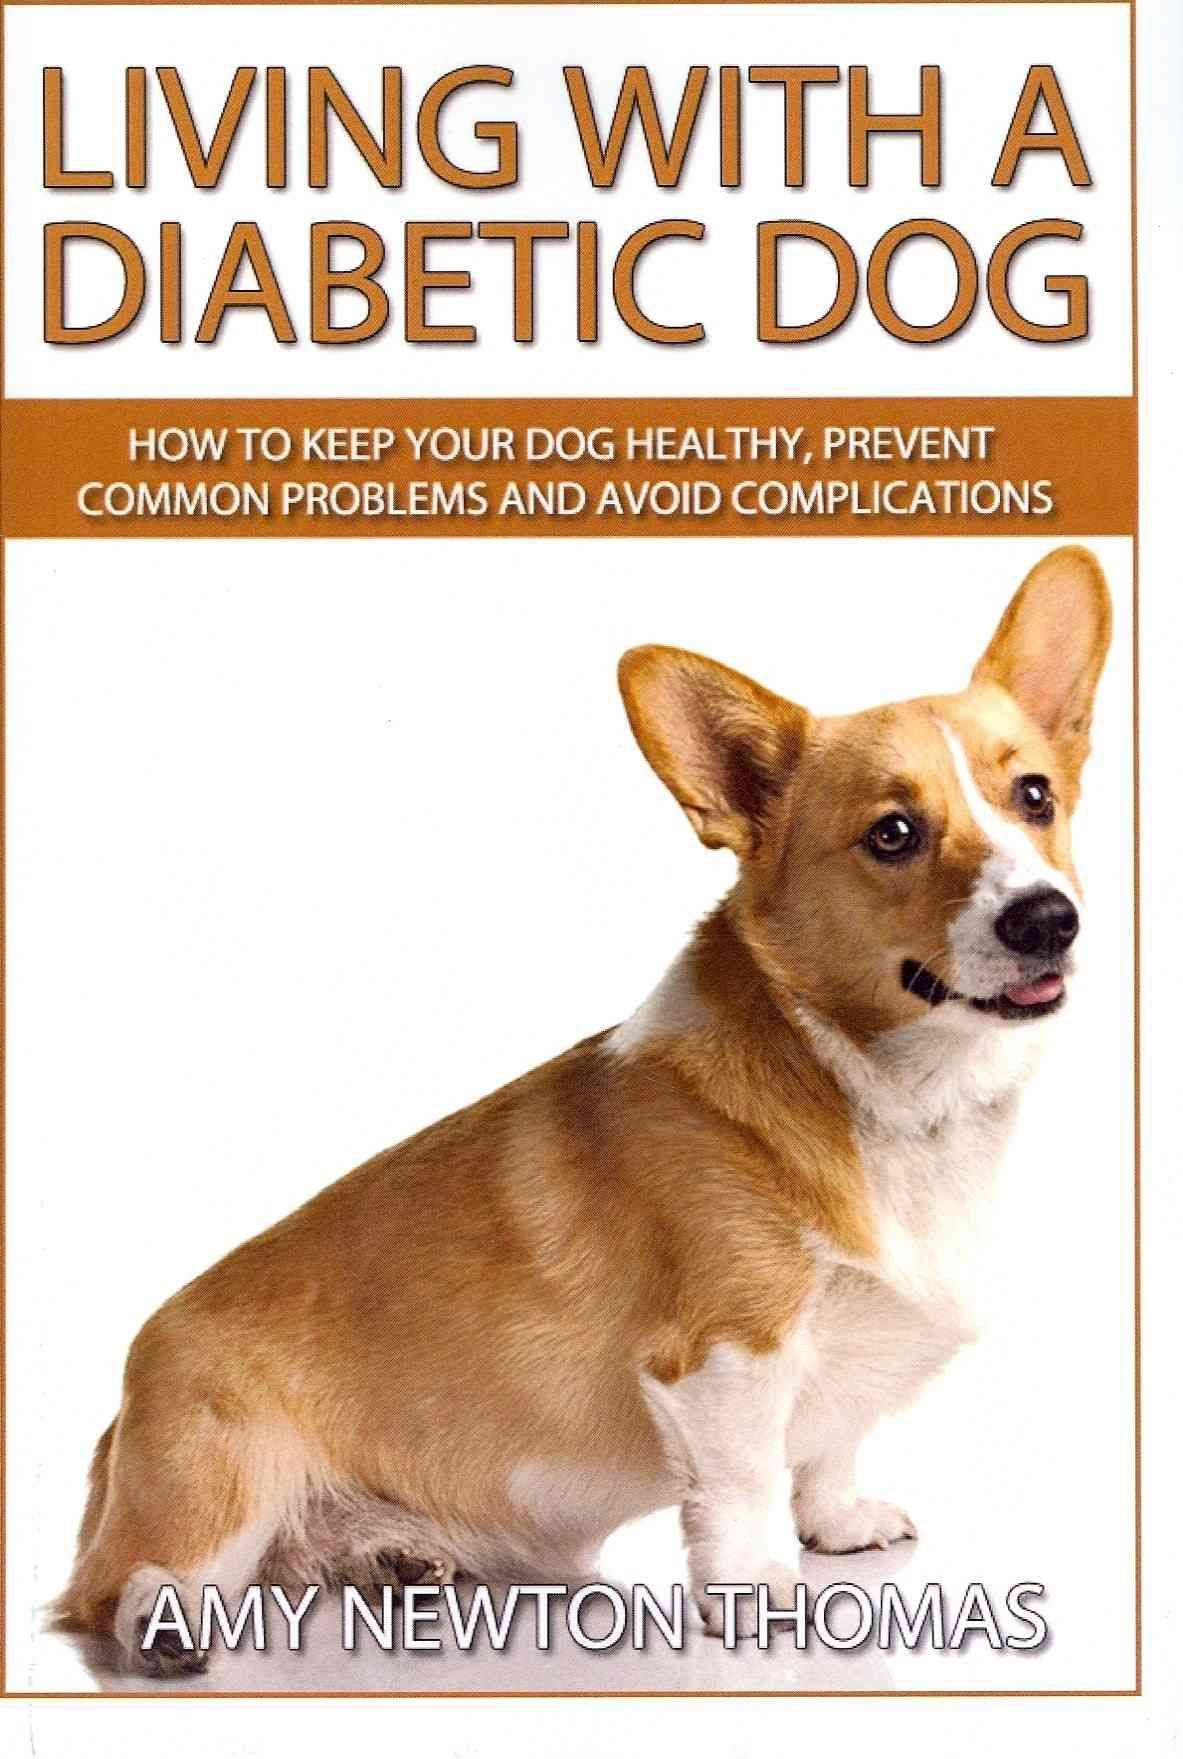 Living With a Diabetic Dog How to Keep Your Dog Healthy